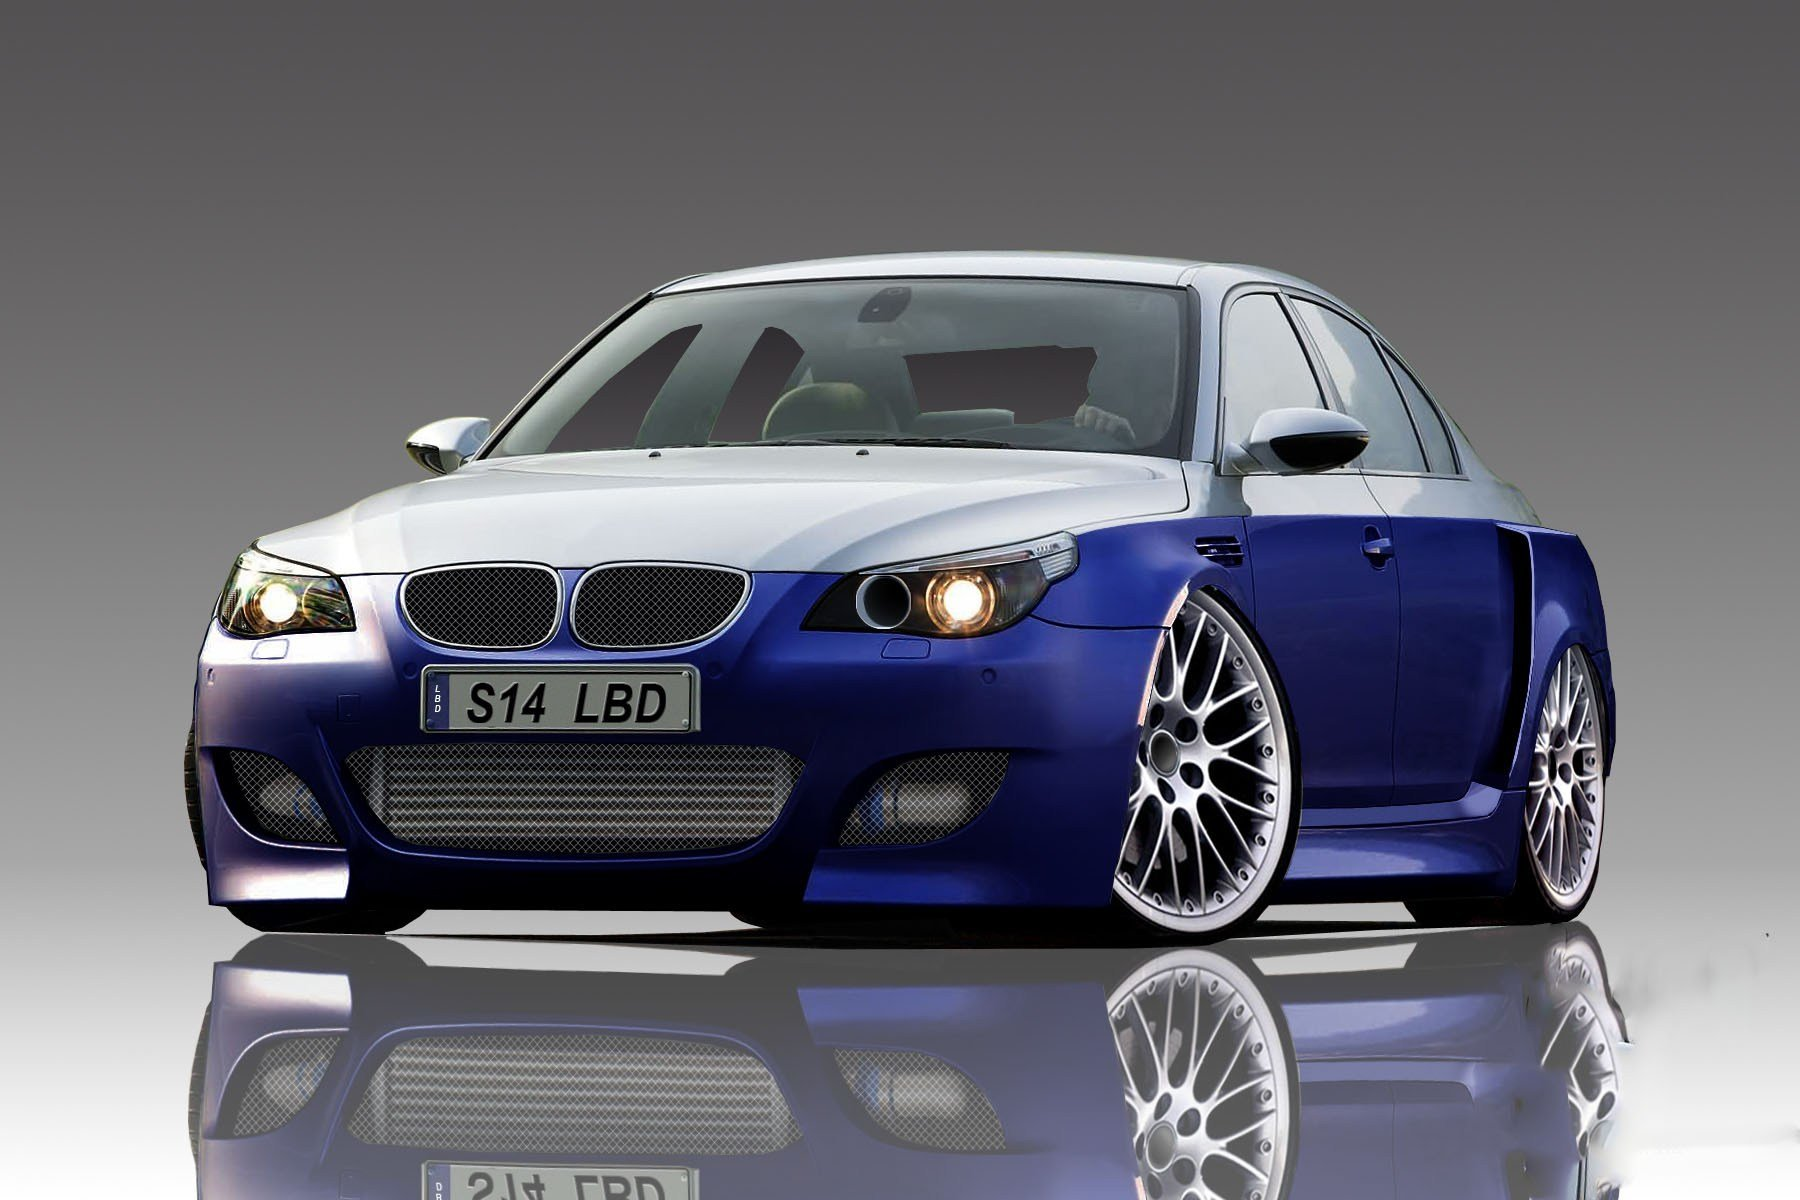 Latest All Cars Hd Wallpaper Images And Photos Free Download